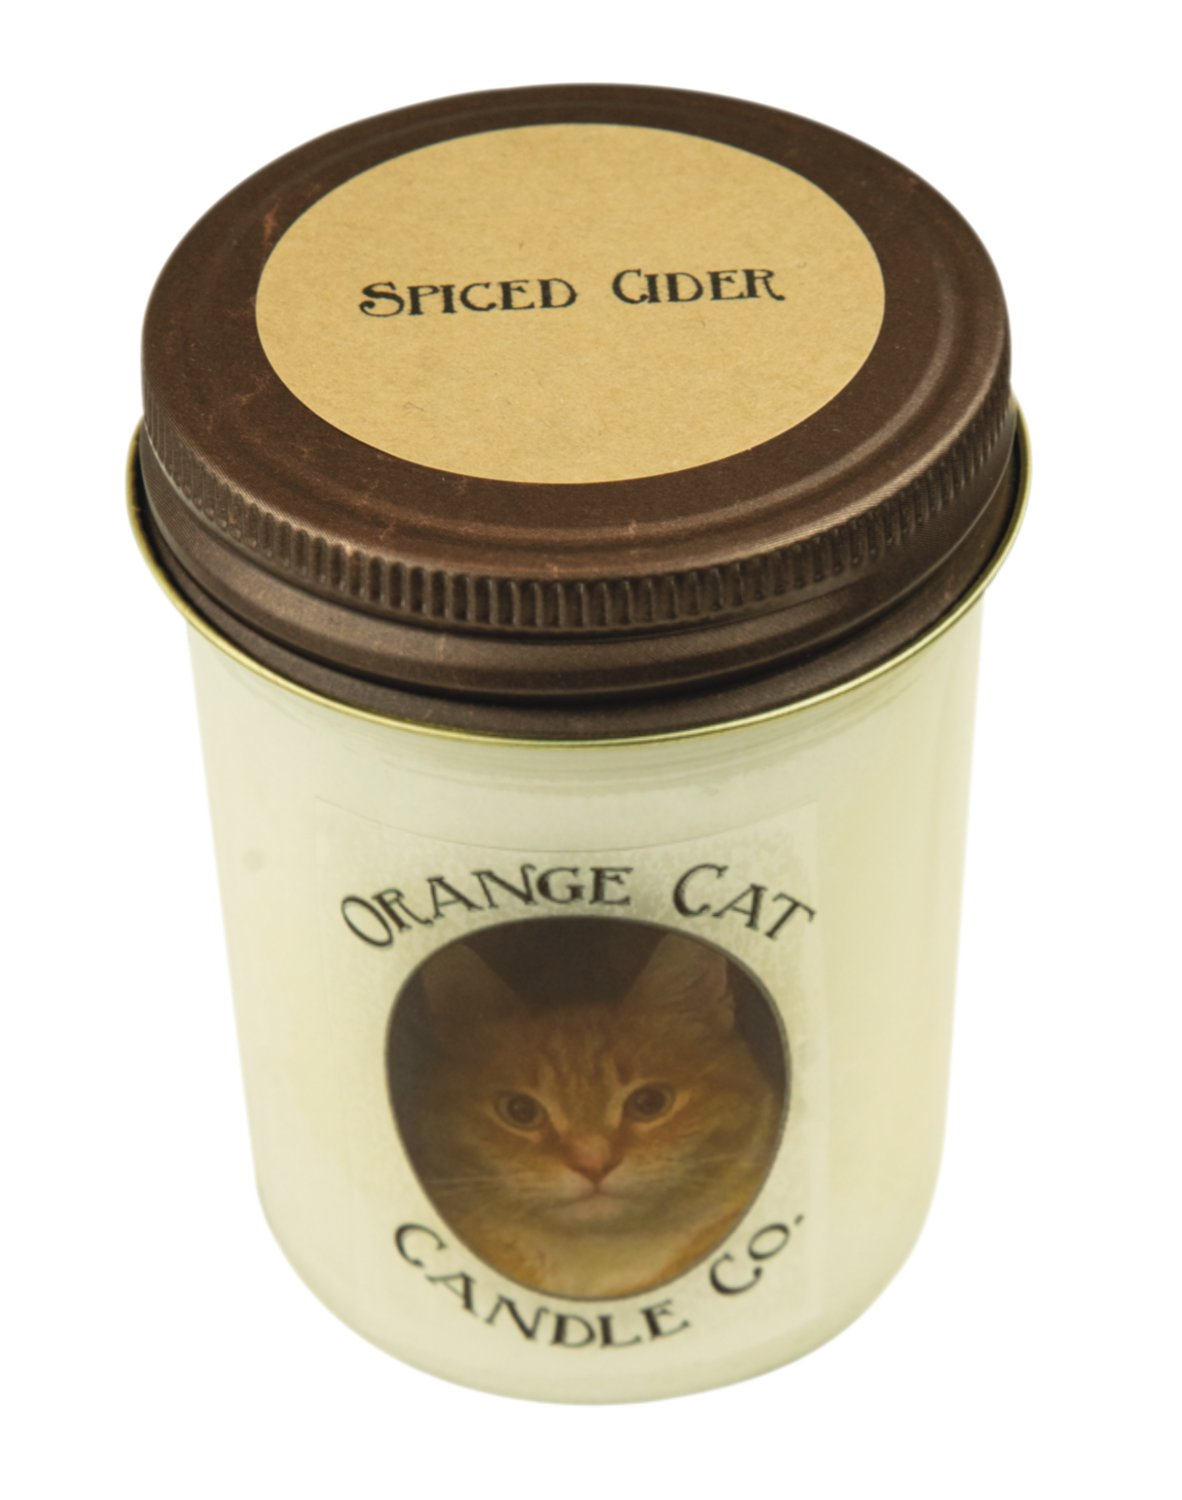 Orange Cat Candle Co.: Hemp-wicked, soy, non-toxic candles made with seasonal scents. 8 oz, $11.50.